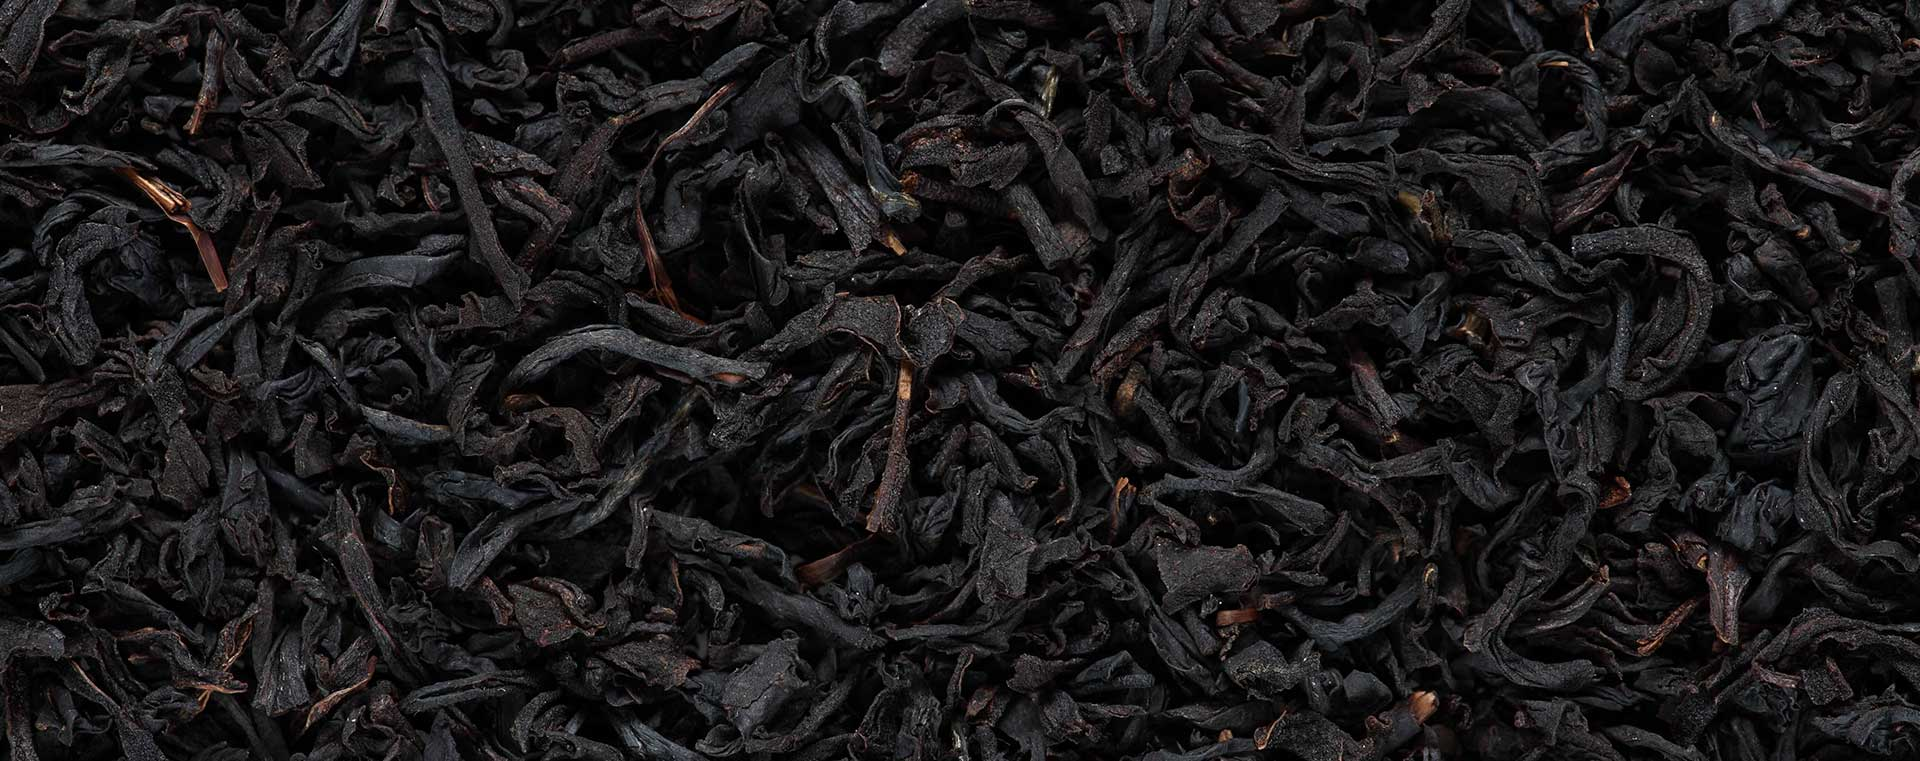 loose-leaf-tea-black